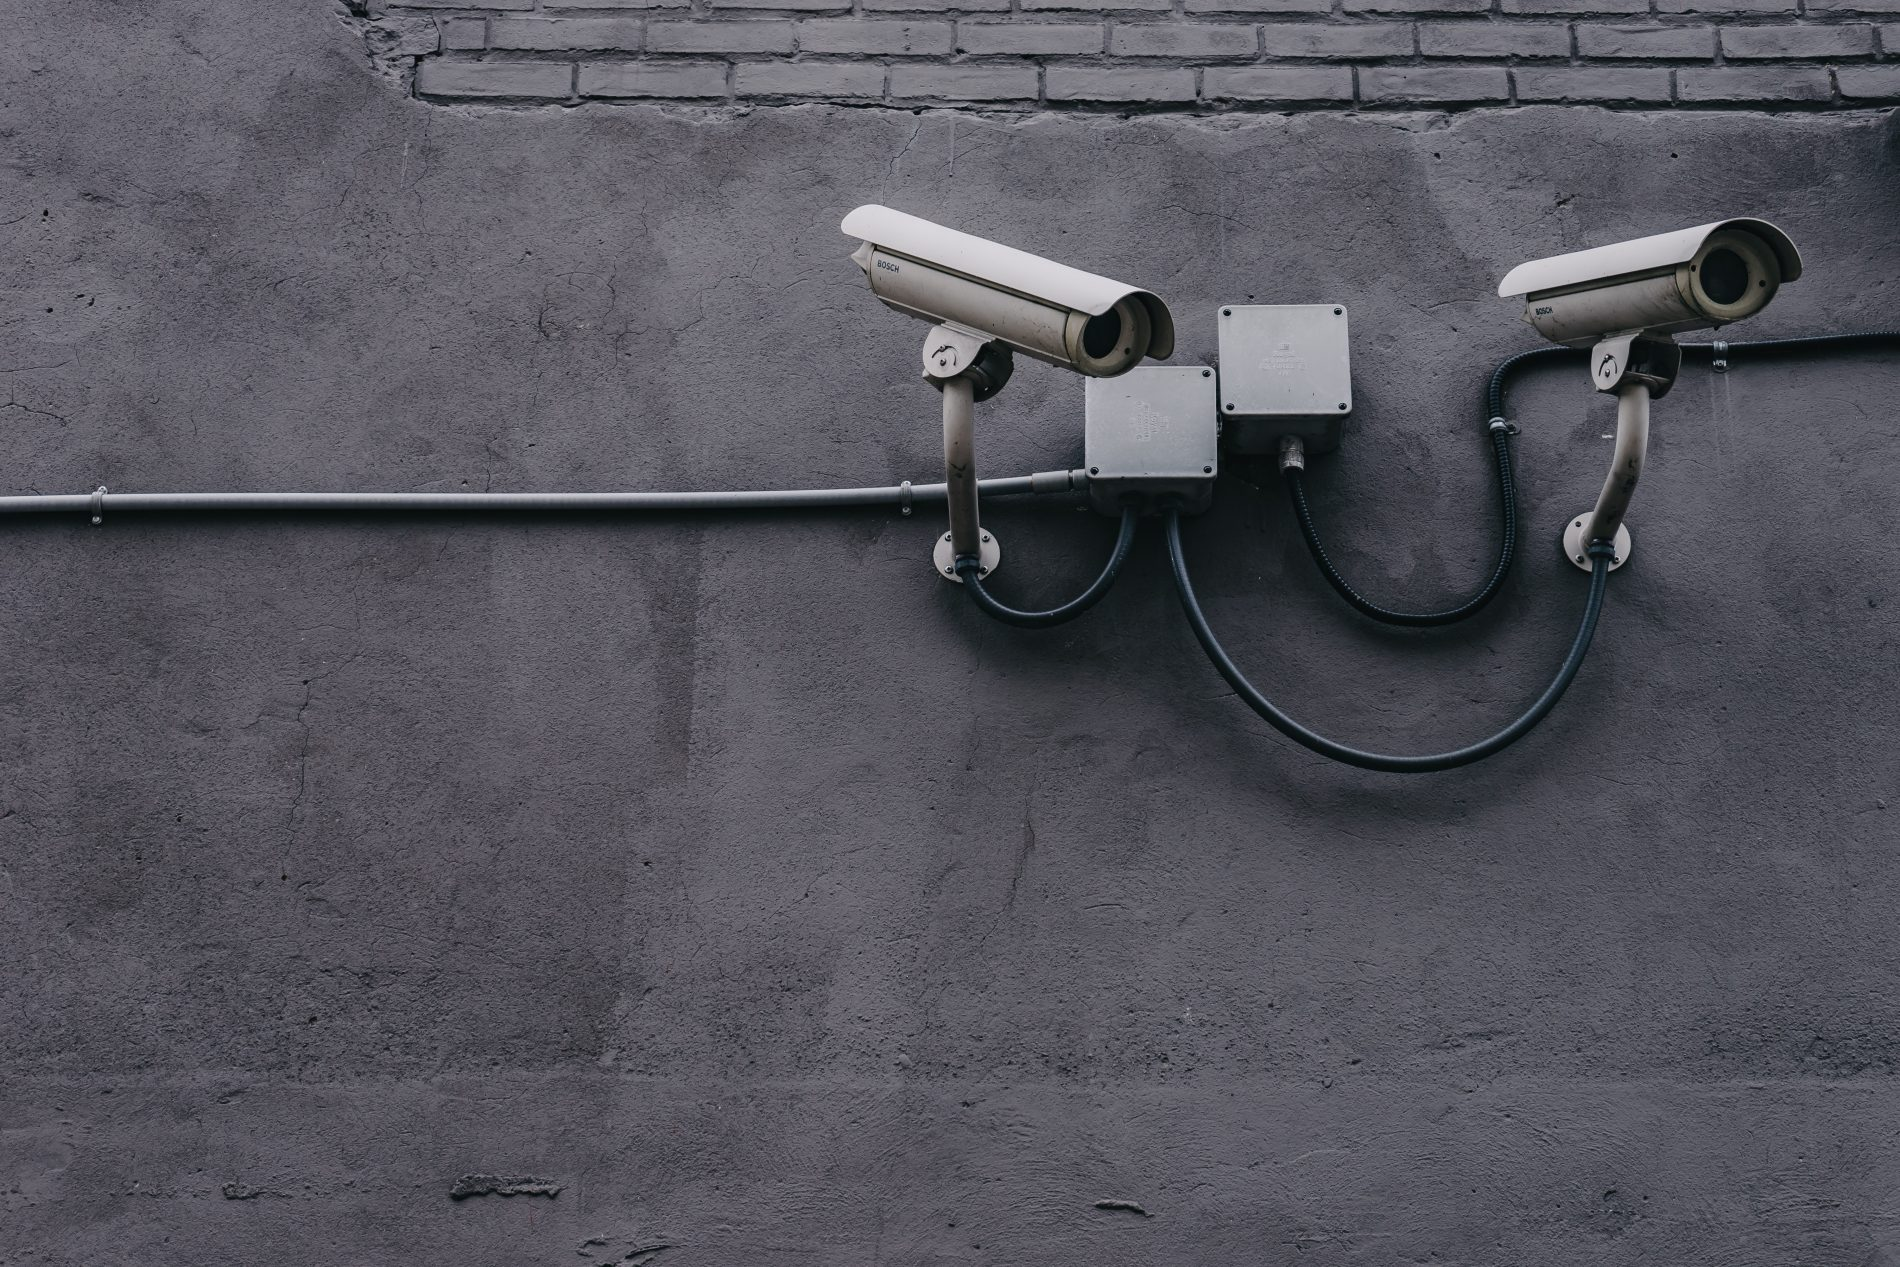 can wireless cameras work without internet?